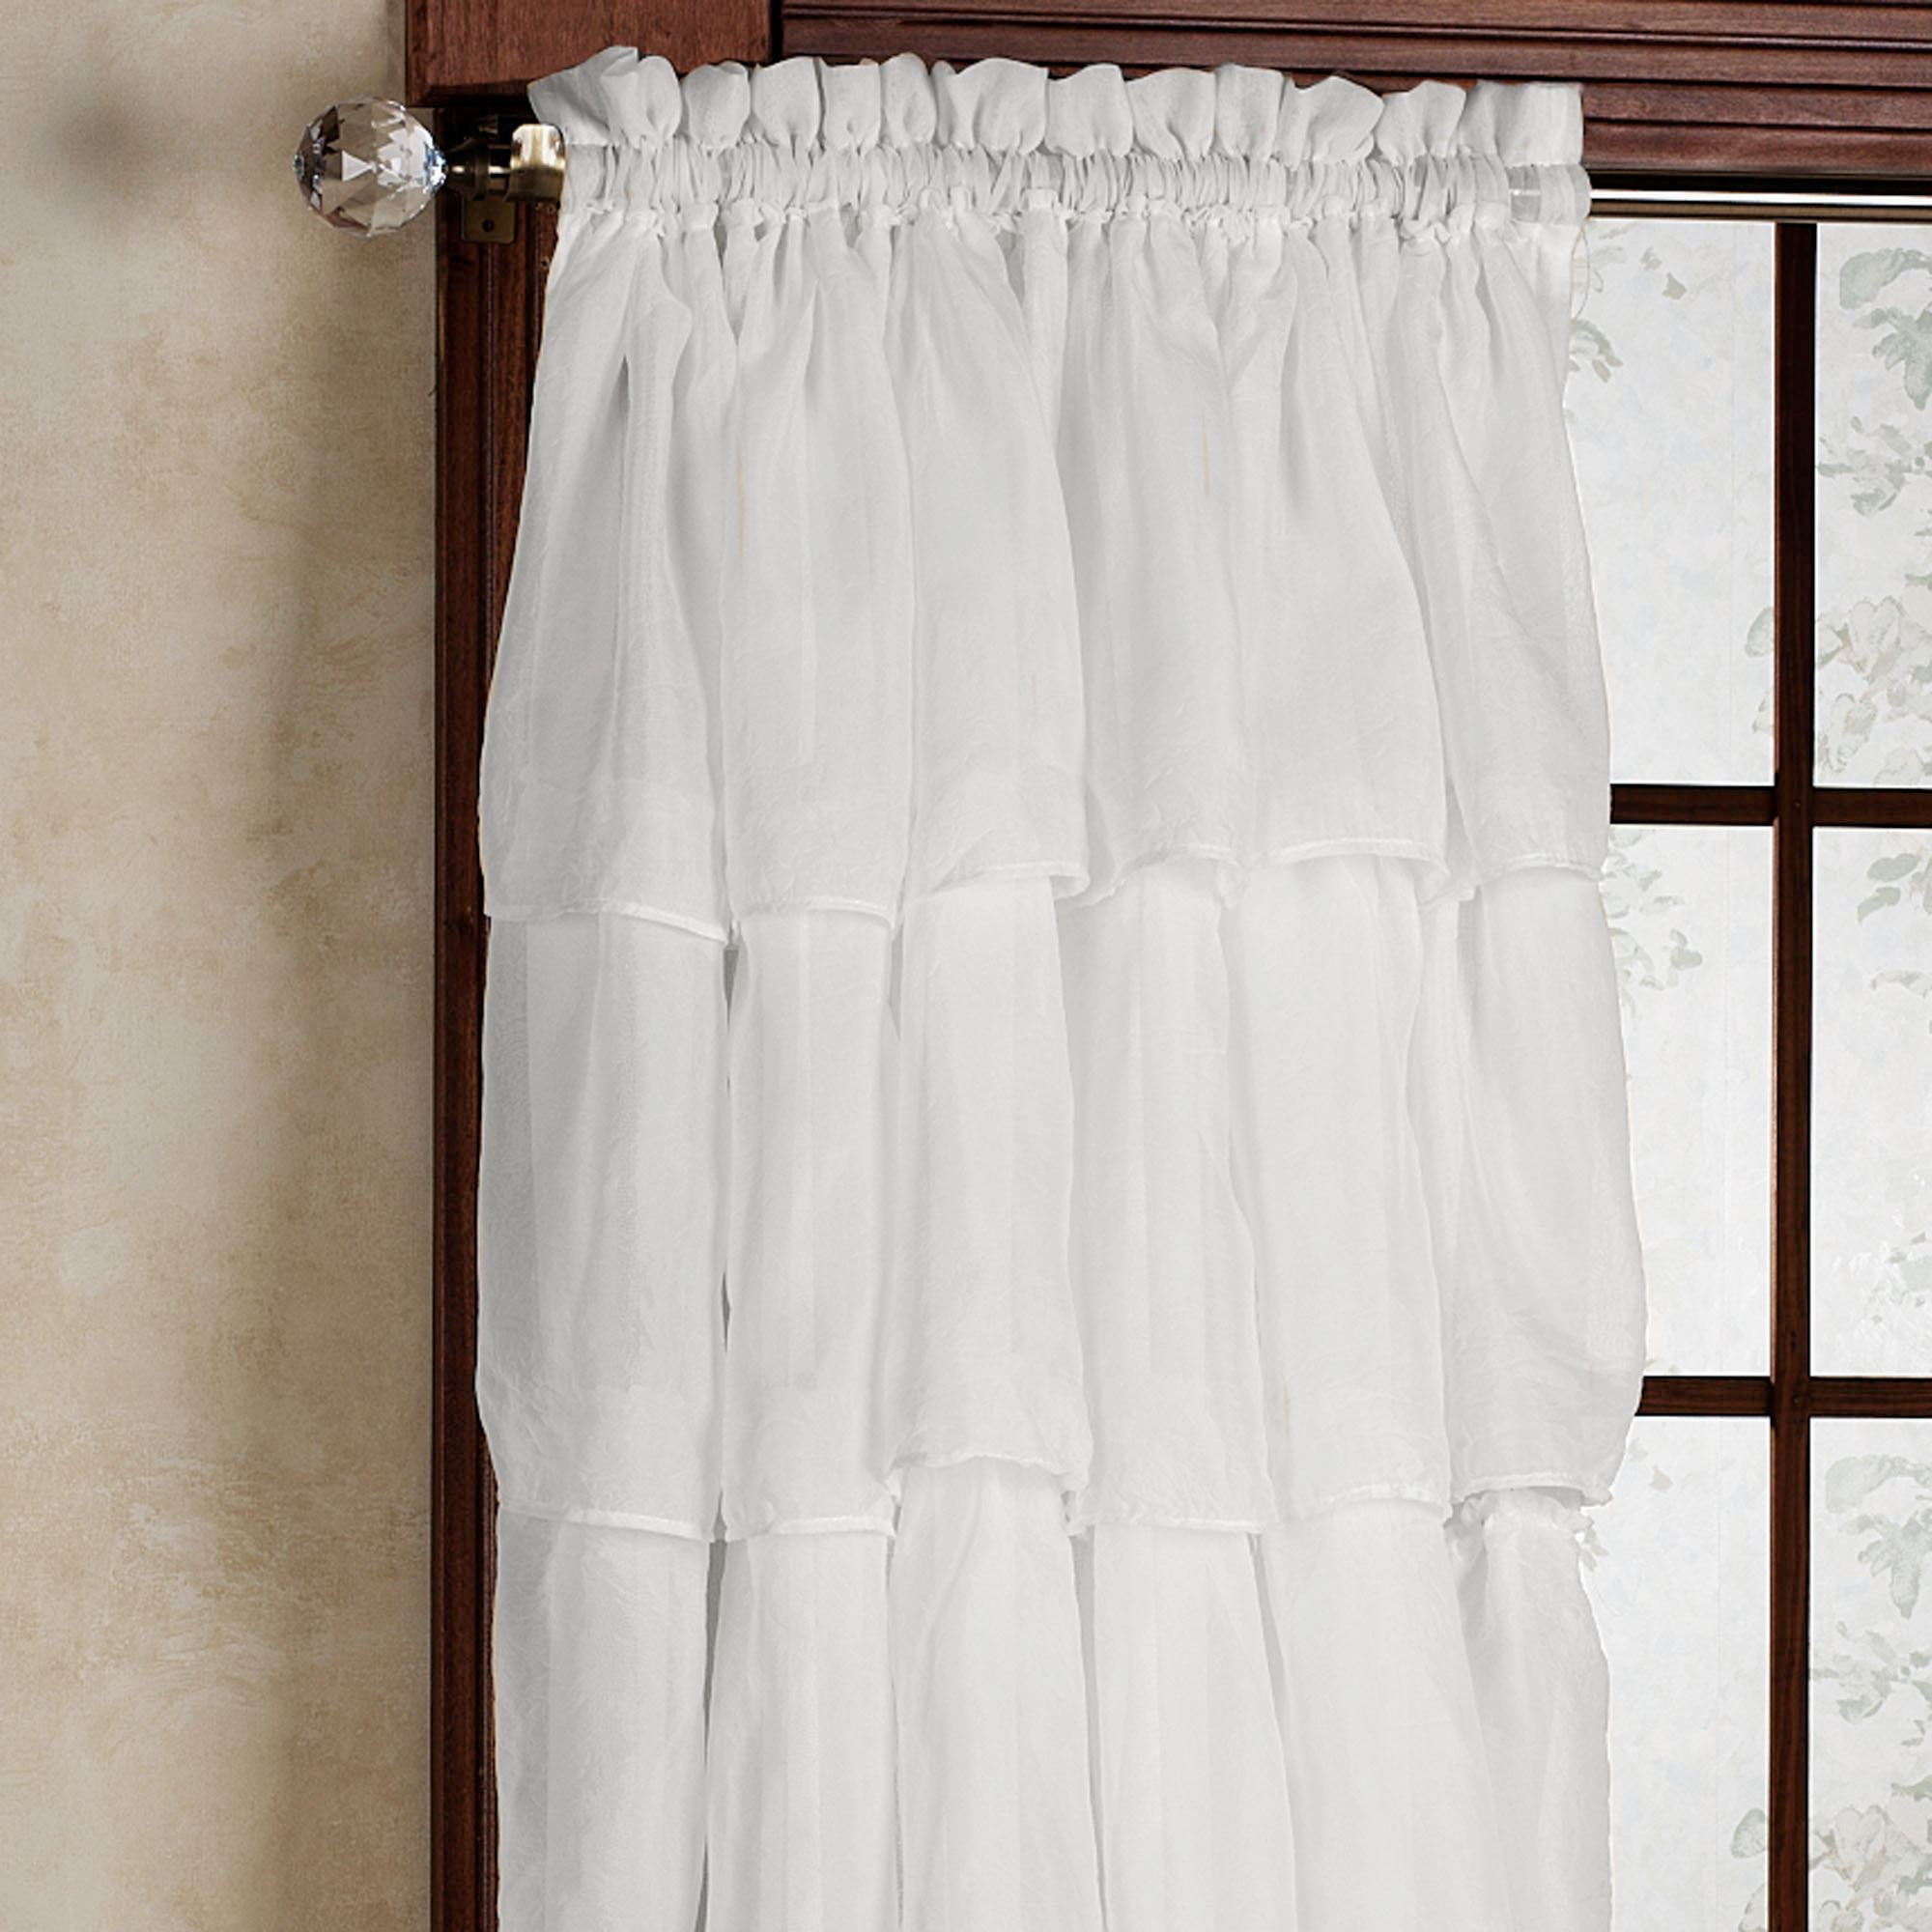 wide ruffle panel to p curtains curtain expand pair x by white tailored waverly emmas window floral treatment garden click